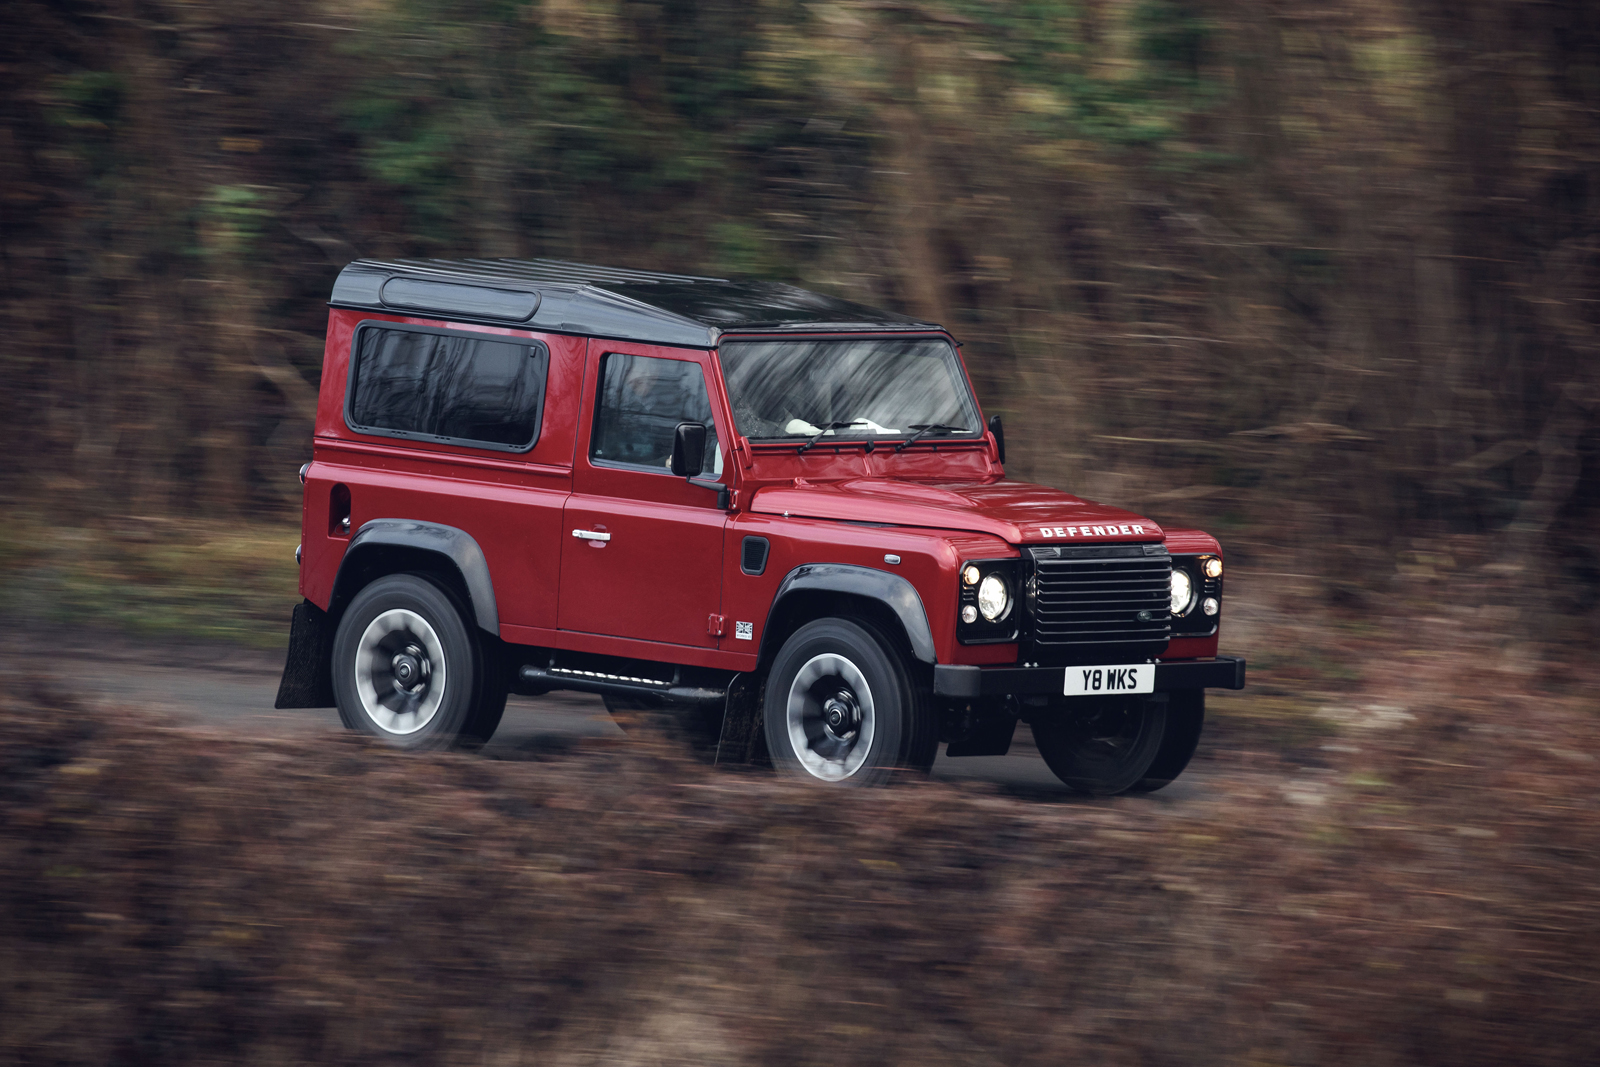 Land Rover Defender Works V8 Is The Most Powerful Defender Ever Built 187 Autoguide Com News